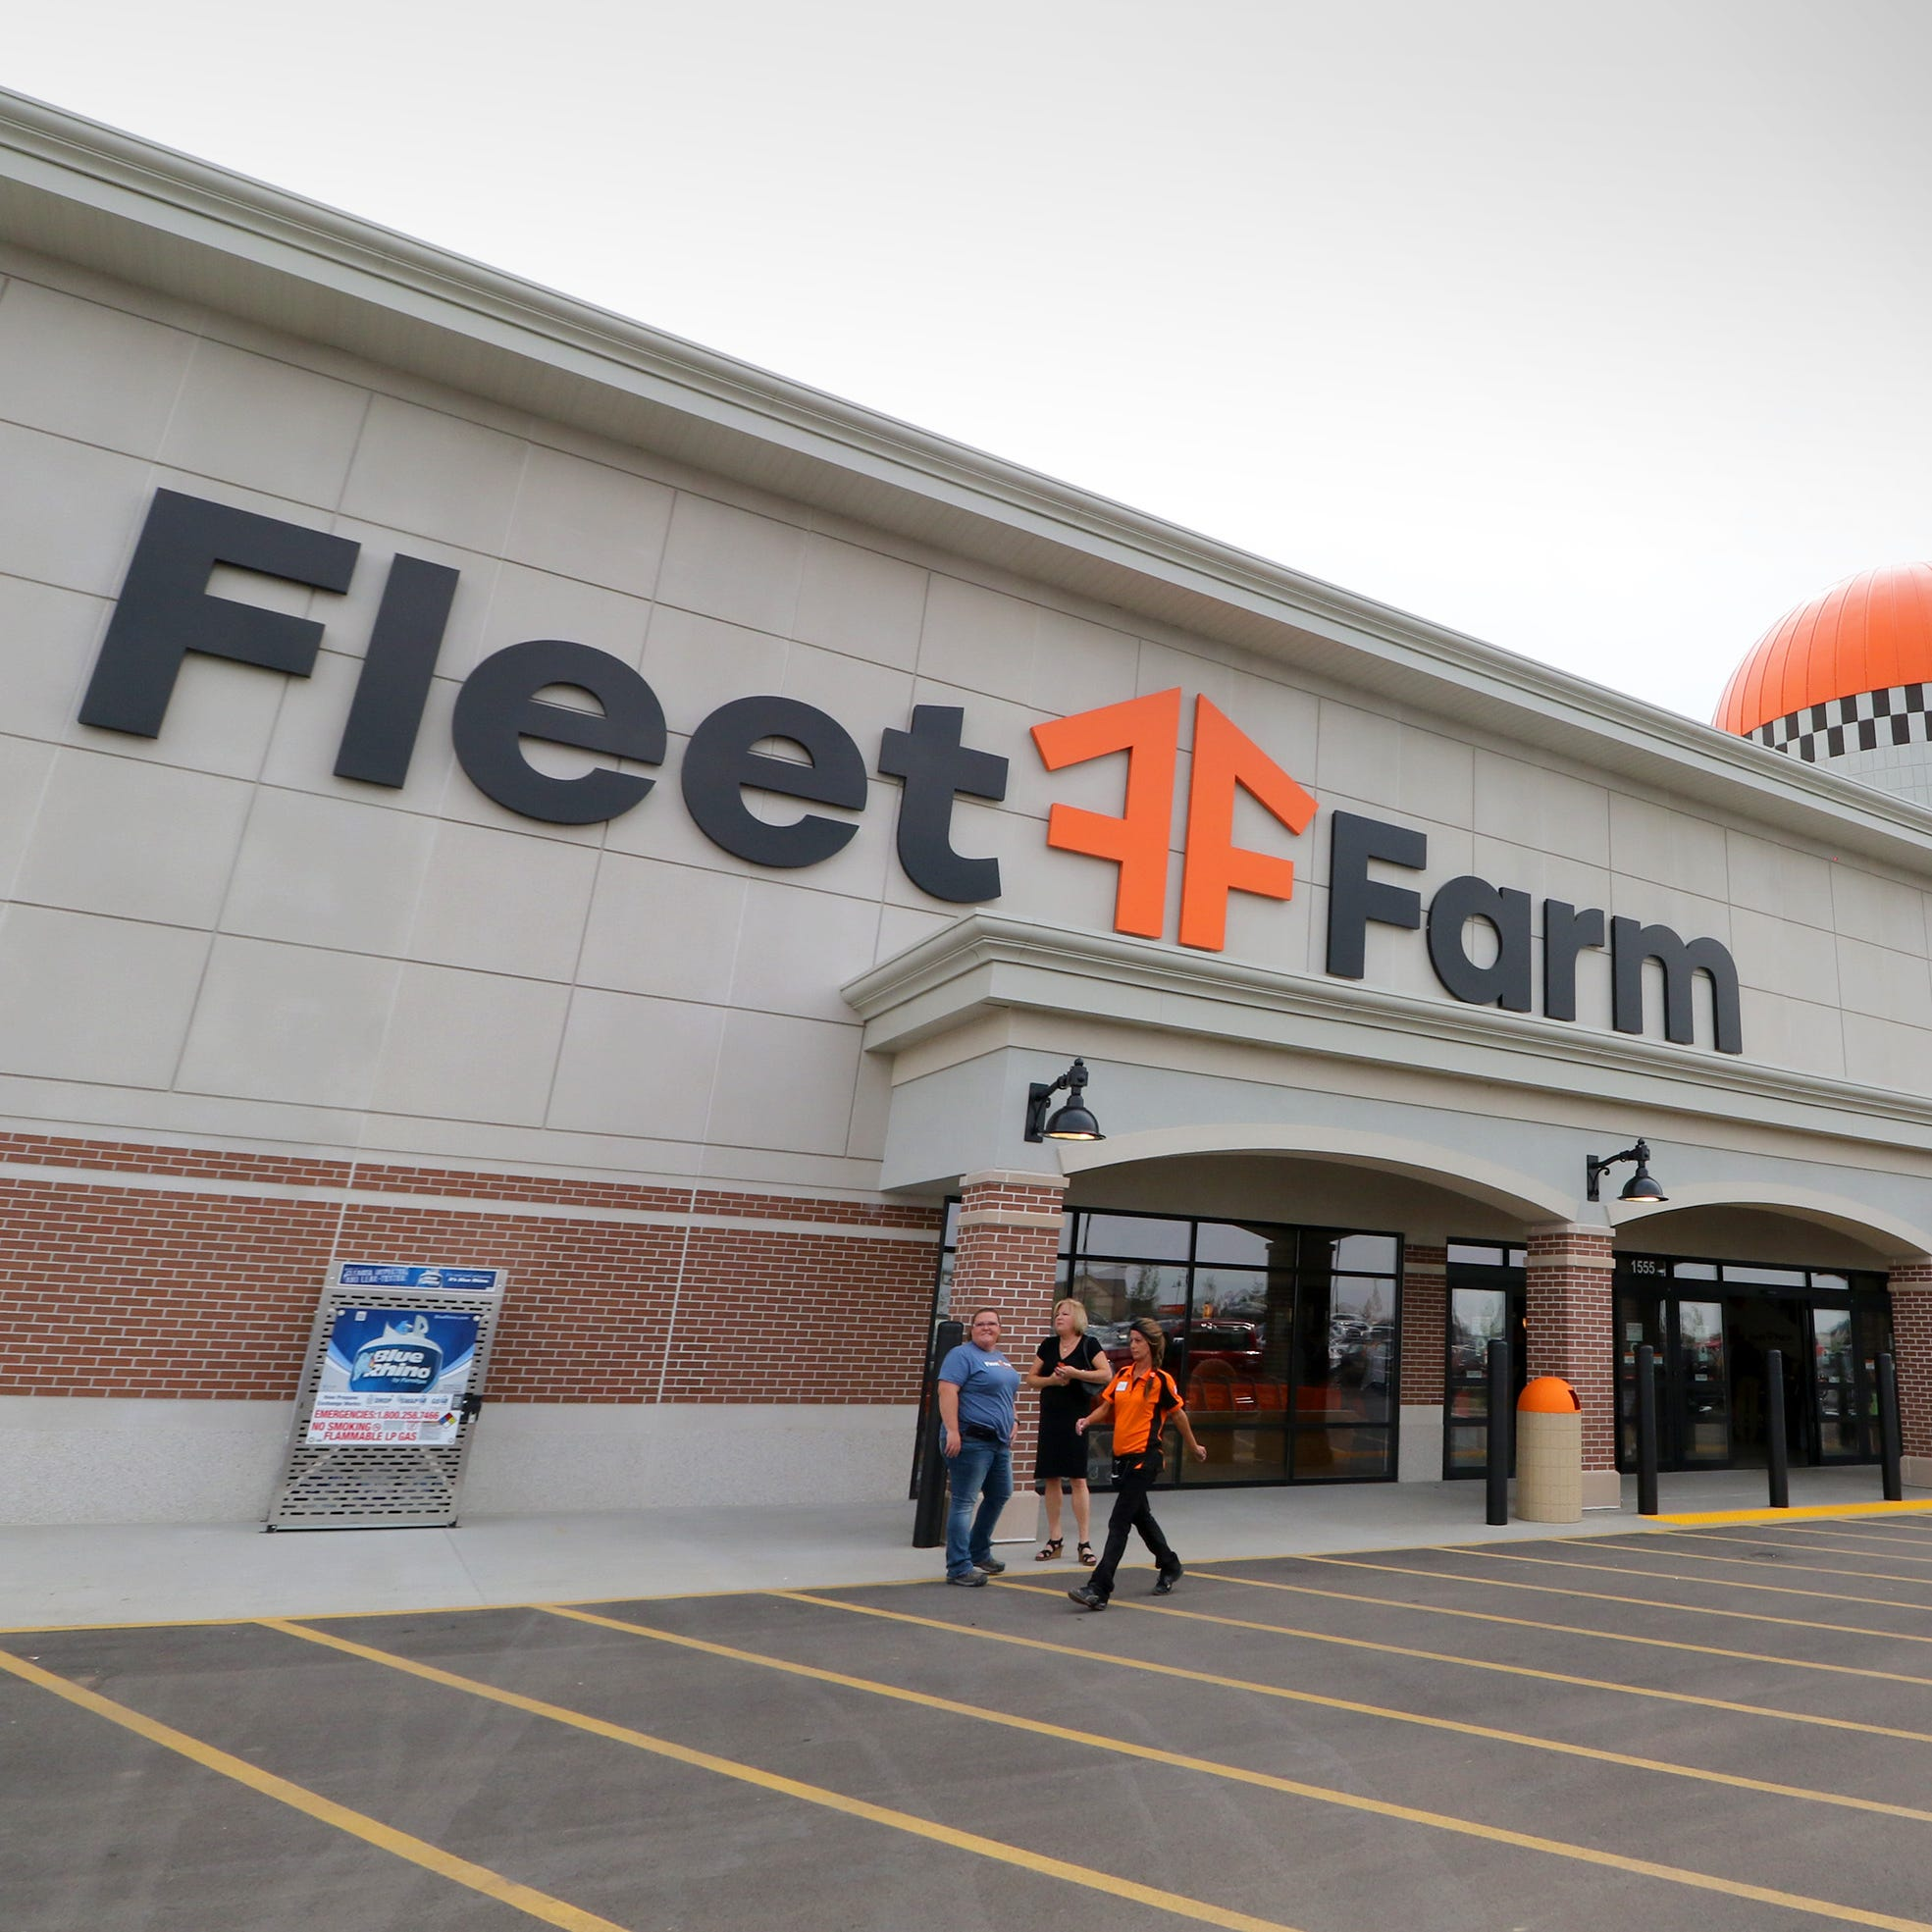 Oconomowoc's new Fleet Farm is open for business